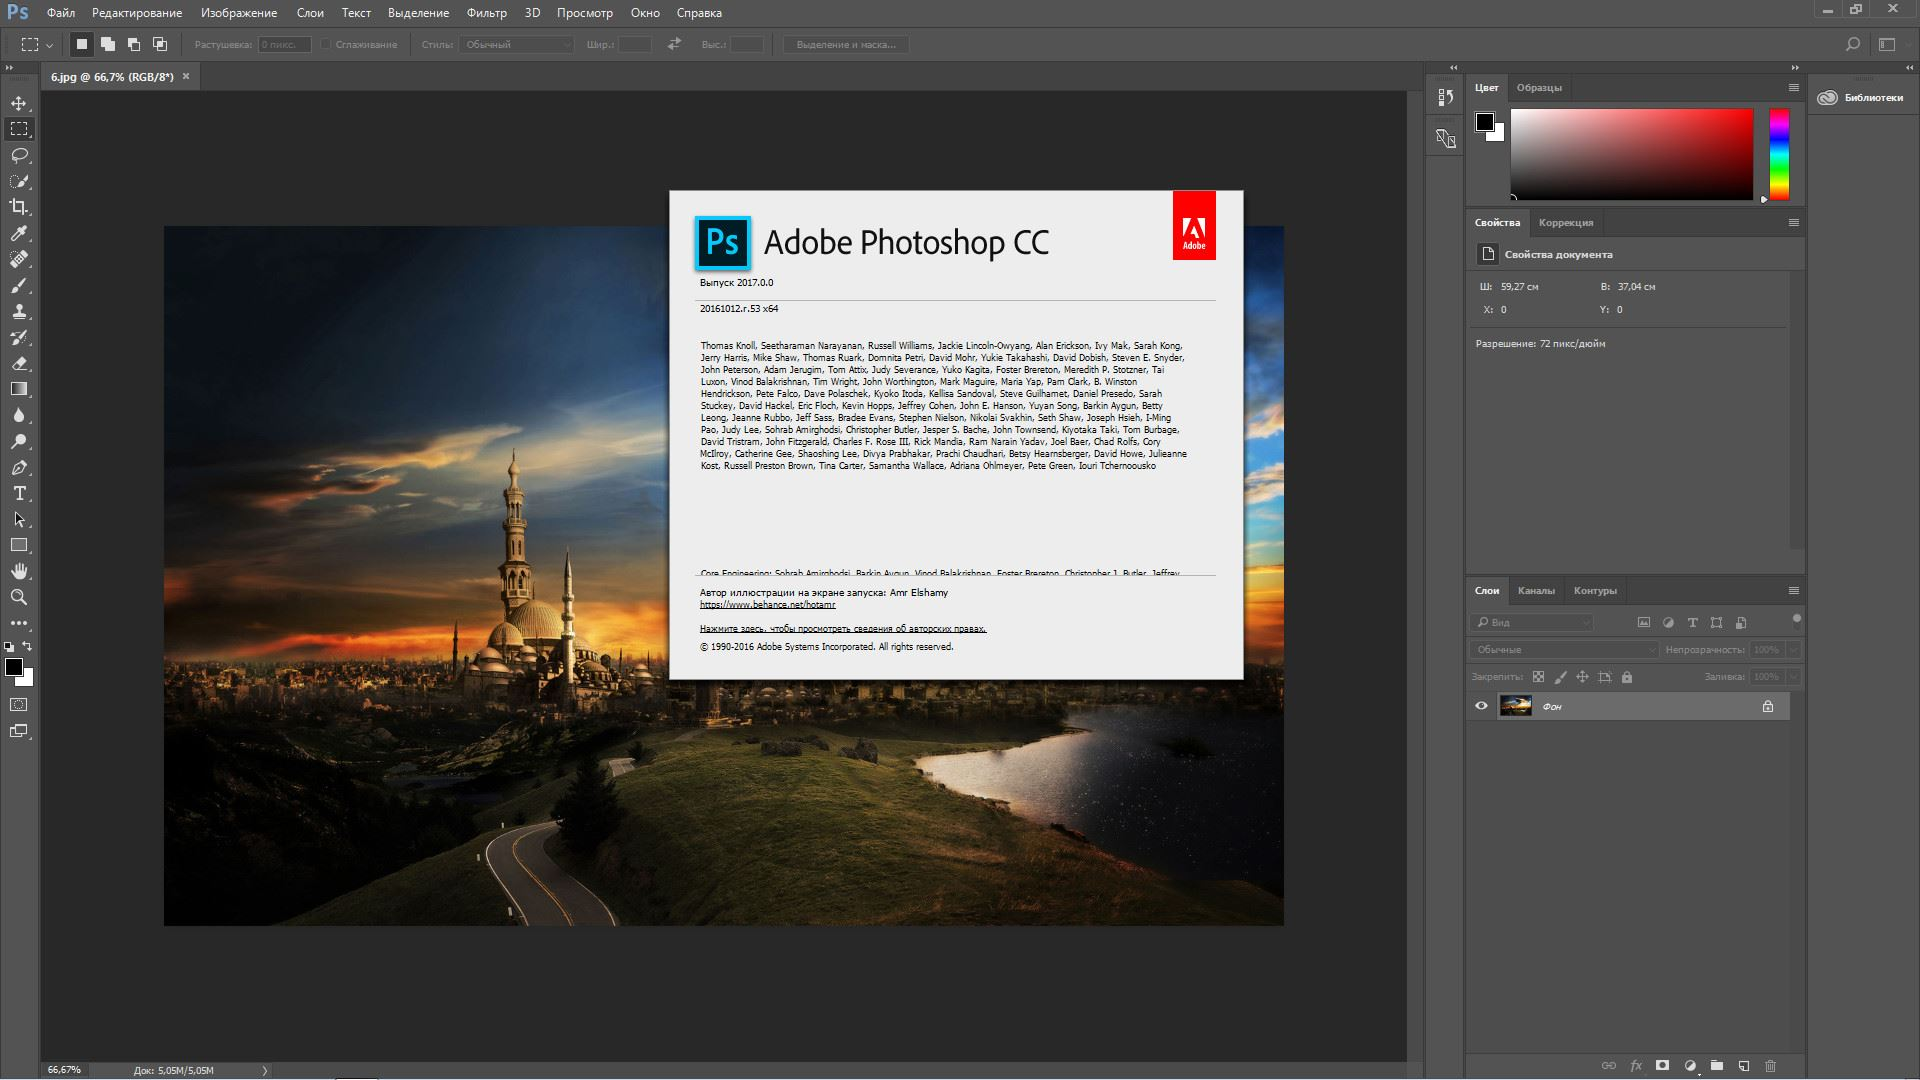 Adobe Photoshop CC 2017.0.0 (2016.10.12.r.53) RePack by D!akov (2016) Multi / Русский